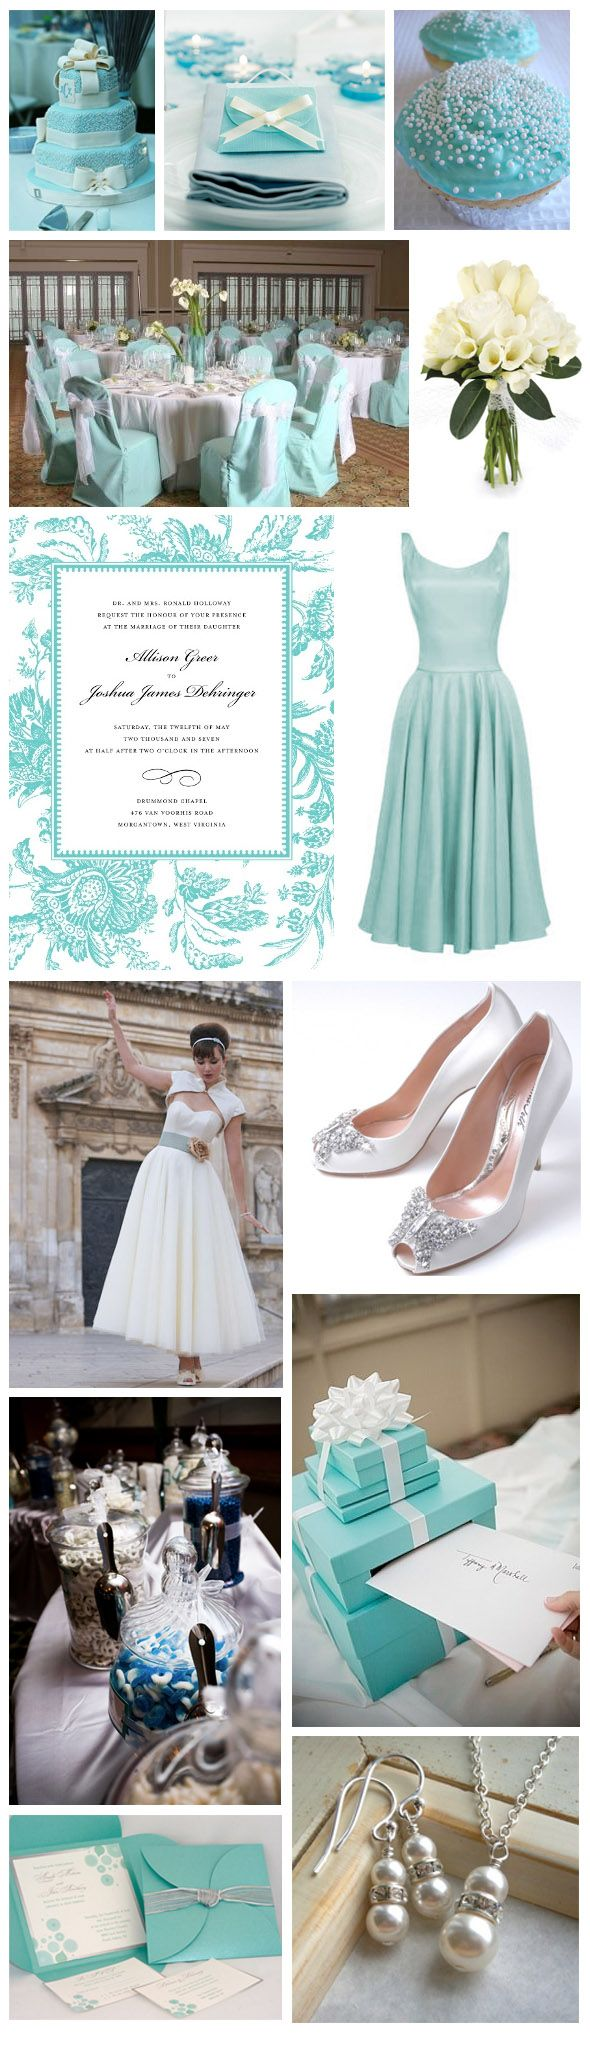 bridesmaid tiffany blue dresses | Wedding Theme Inspiration: Tiffany Blues, Silvers & White